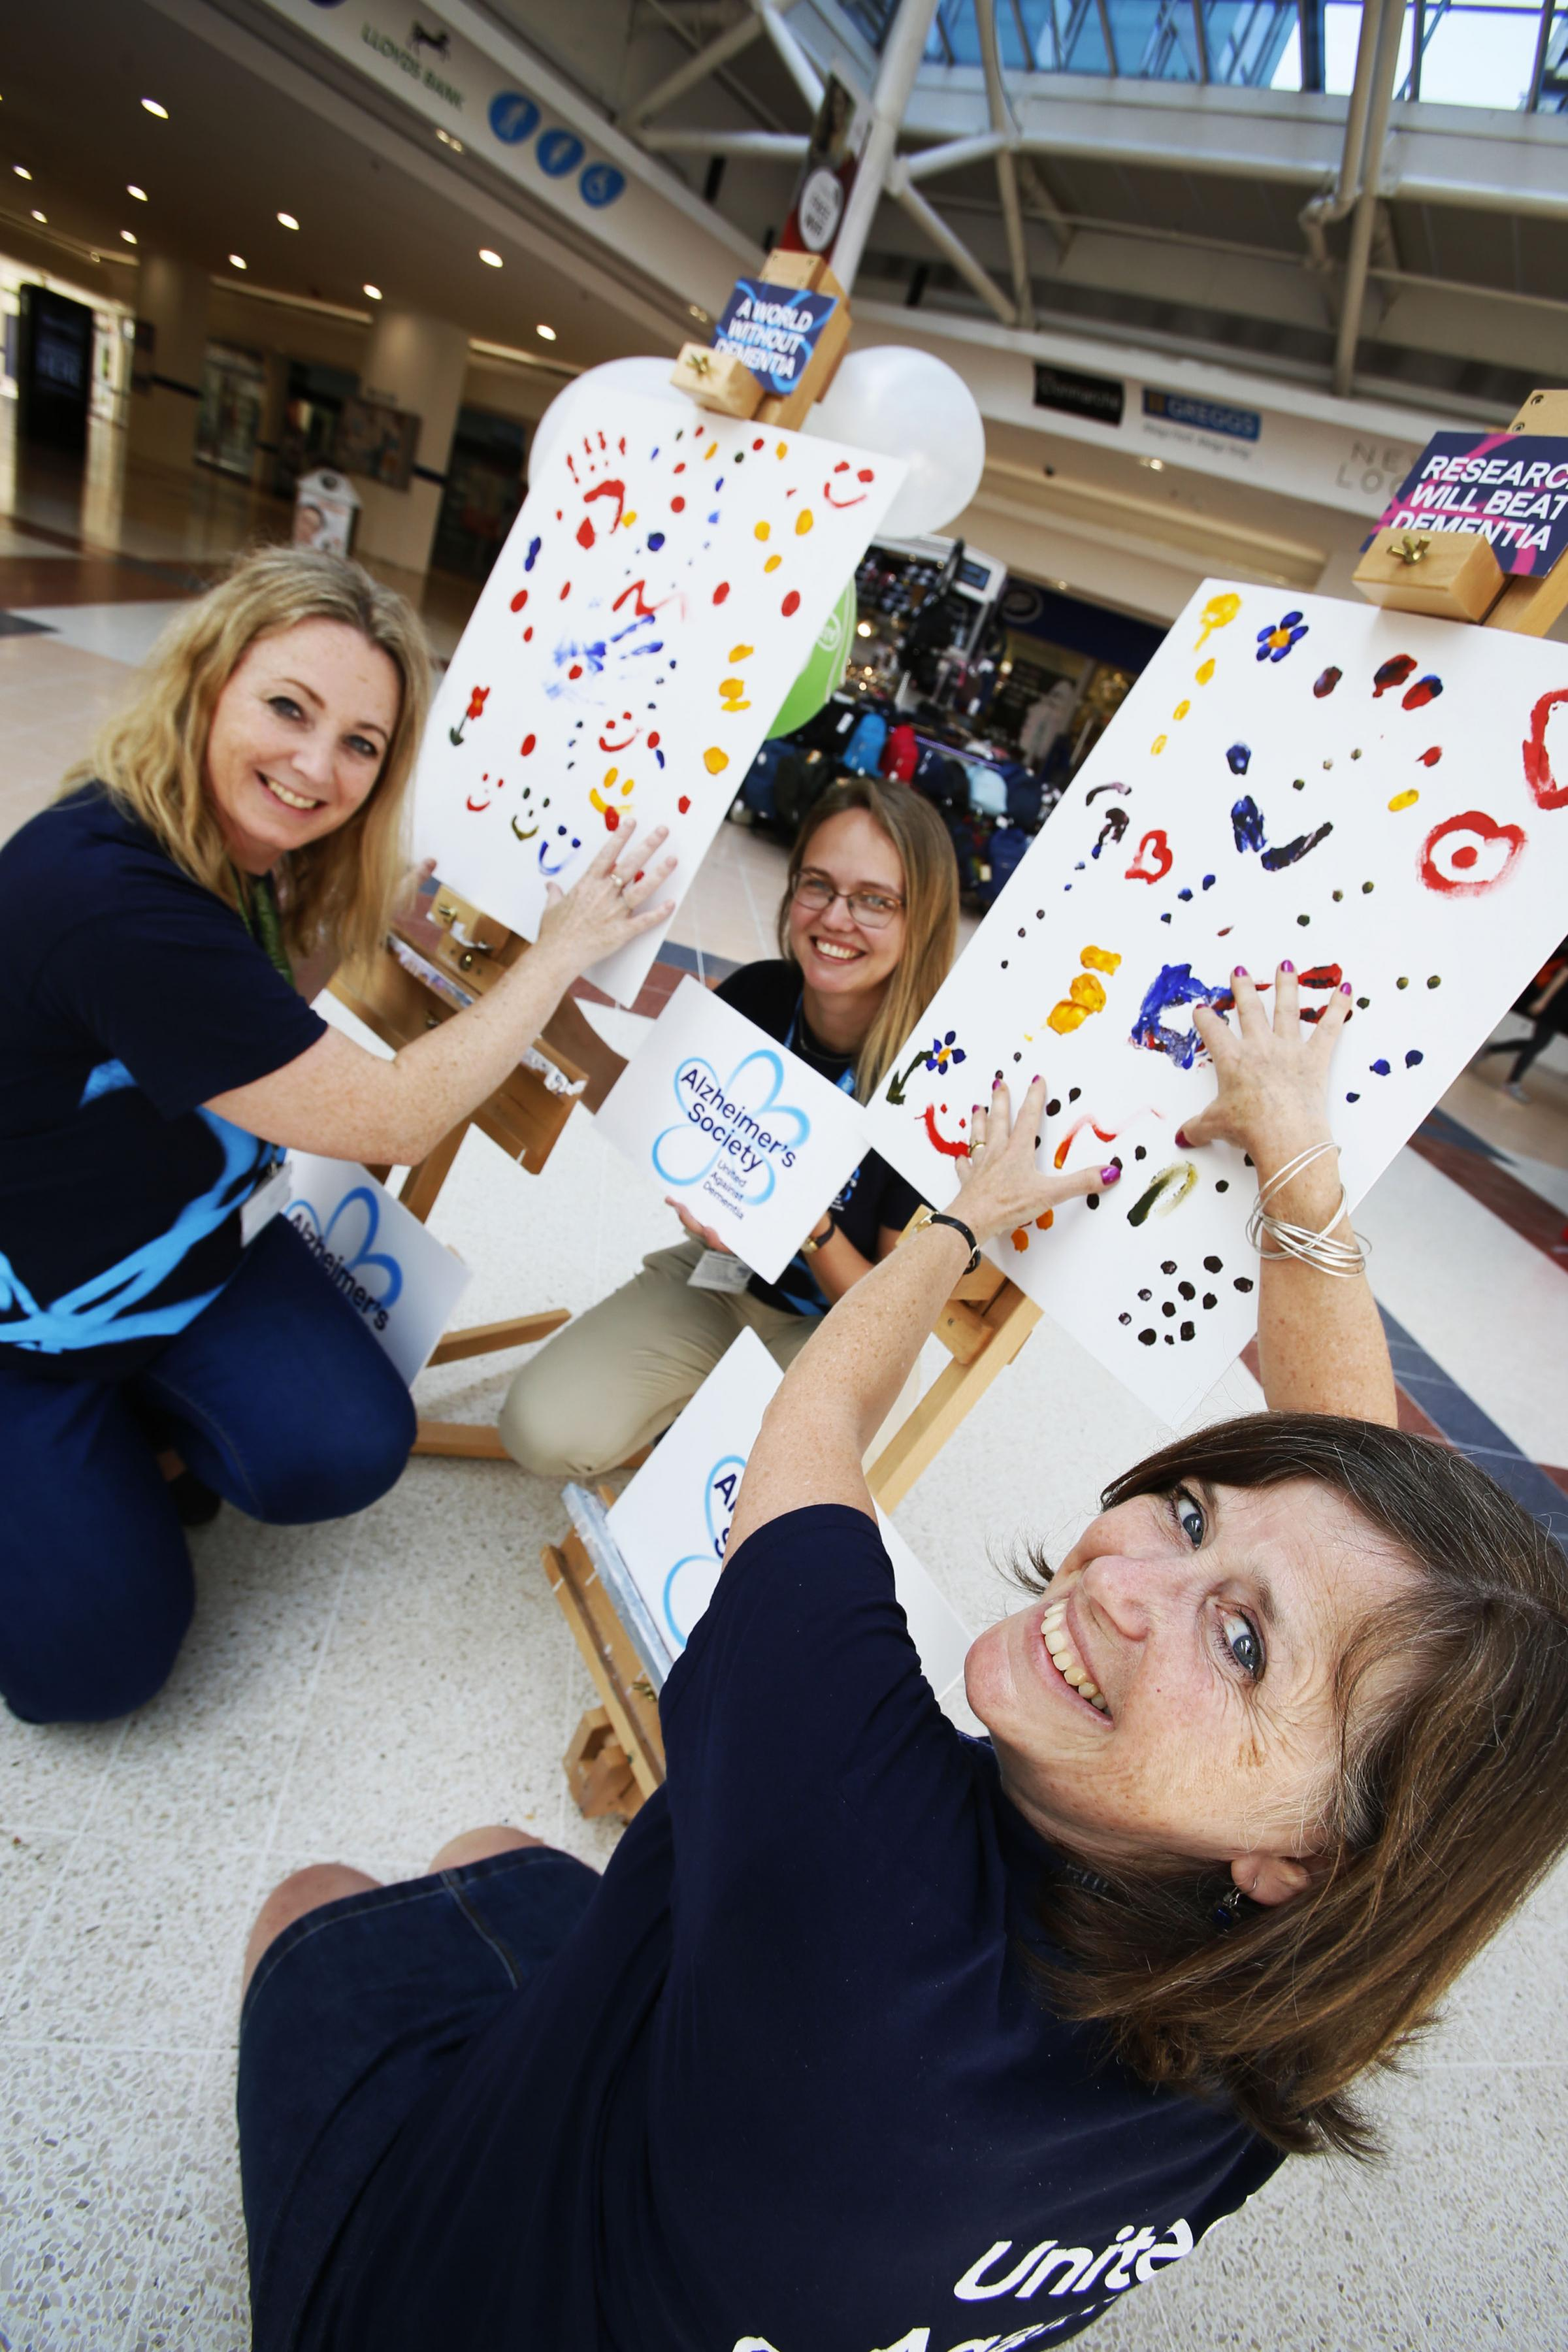 In support of Dementia Action Week the Alzheimer's Society set up a canvas in Templar Square Shopping Centre for people to add their thumb prints in support of those affected by dementia.